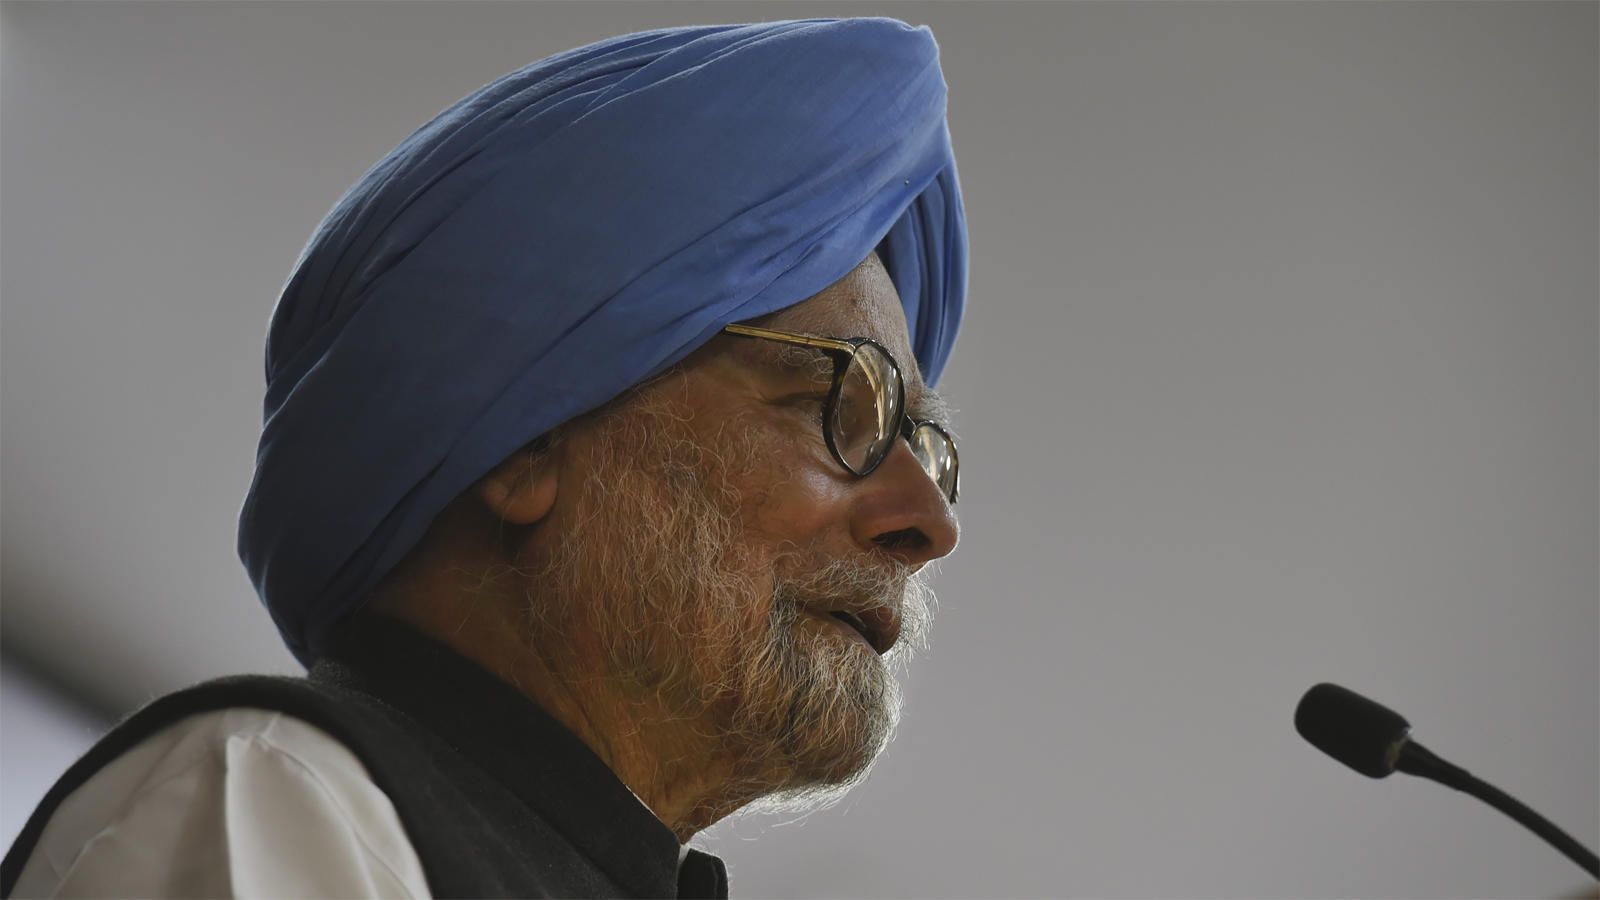 idea-of-freedom-forms-lives-of-people-if-they-can-live-as-equal-citizens-under-law-manmohan-singh